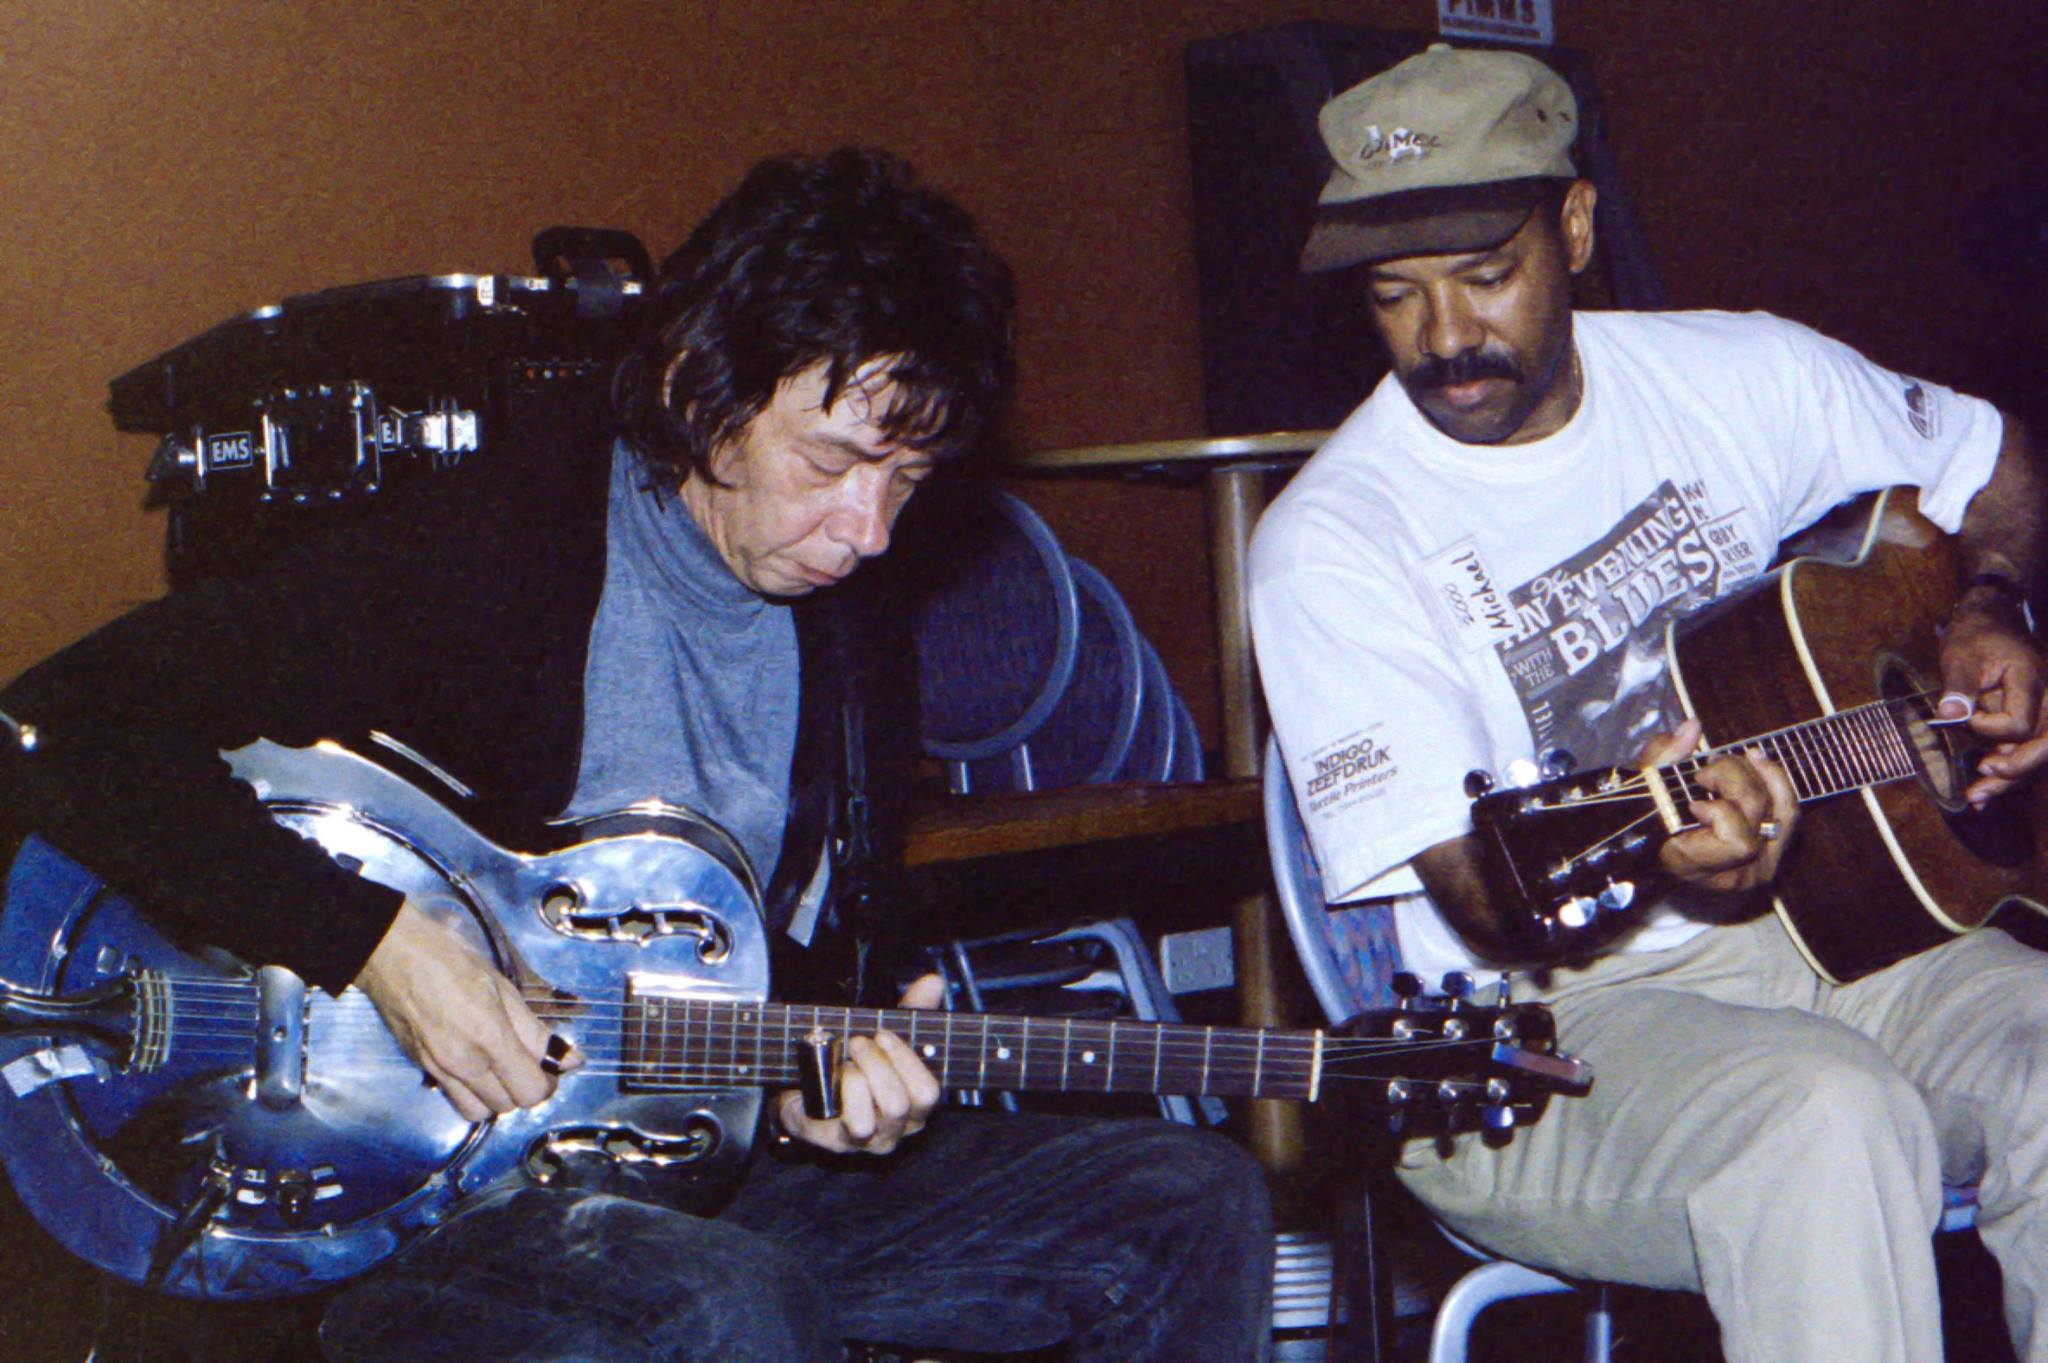 Michael with Sam Mitchell, Exeter University, England 2000